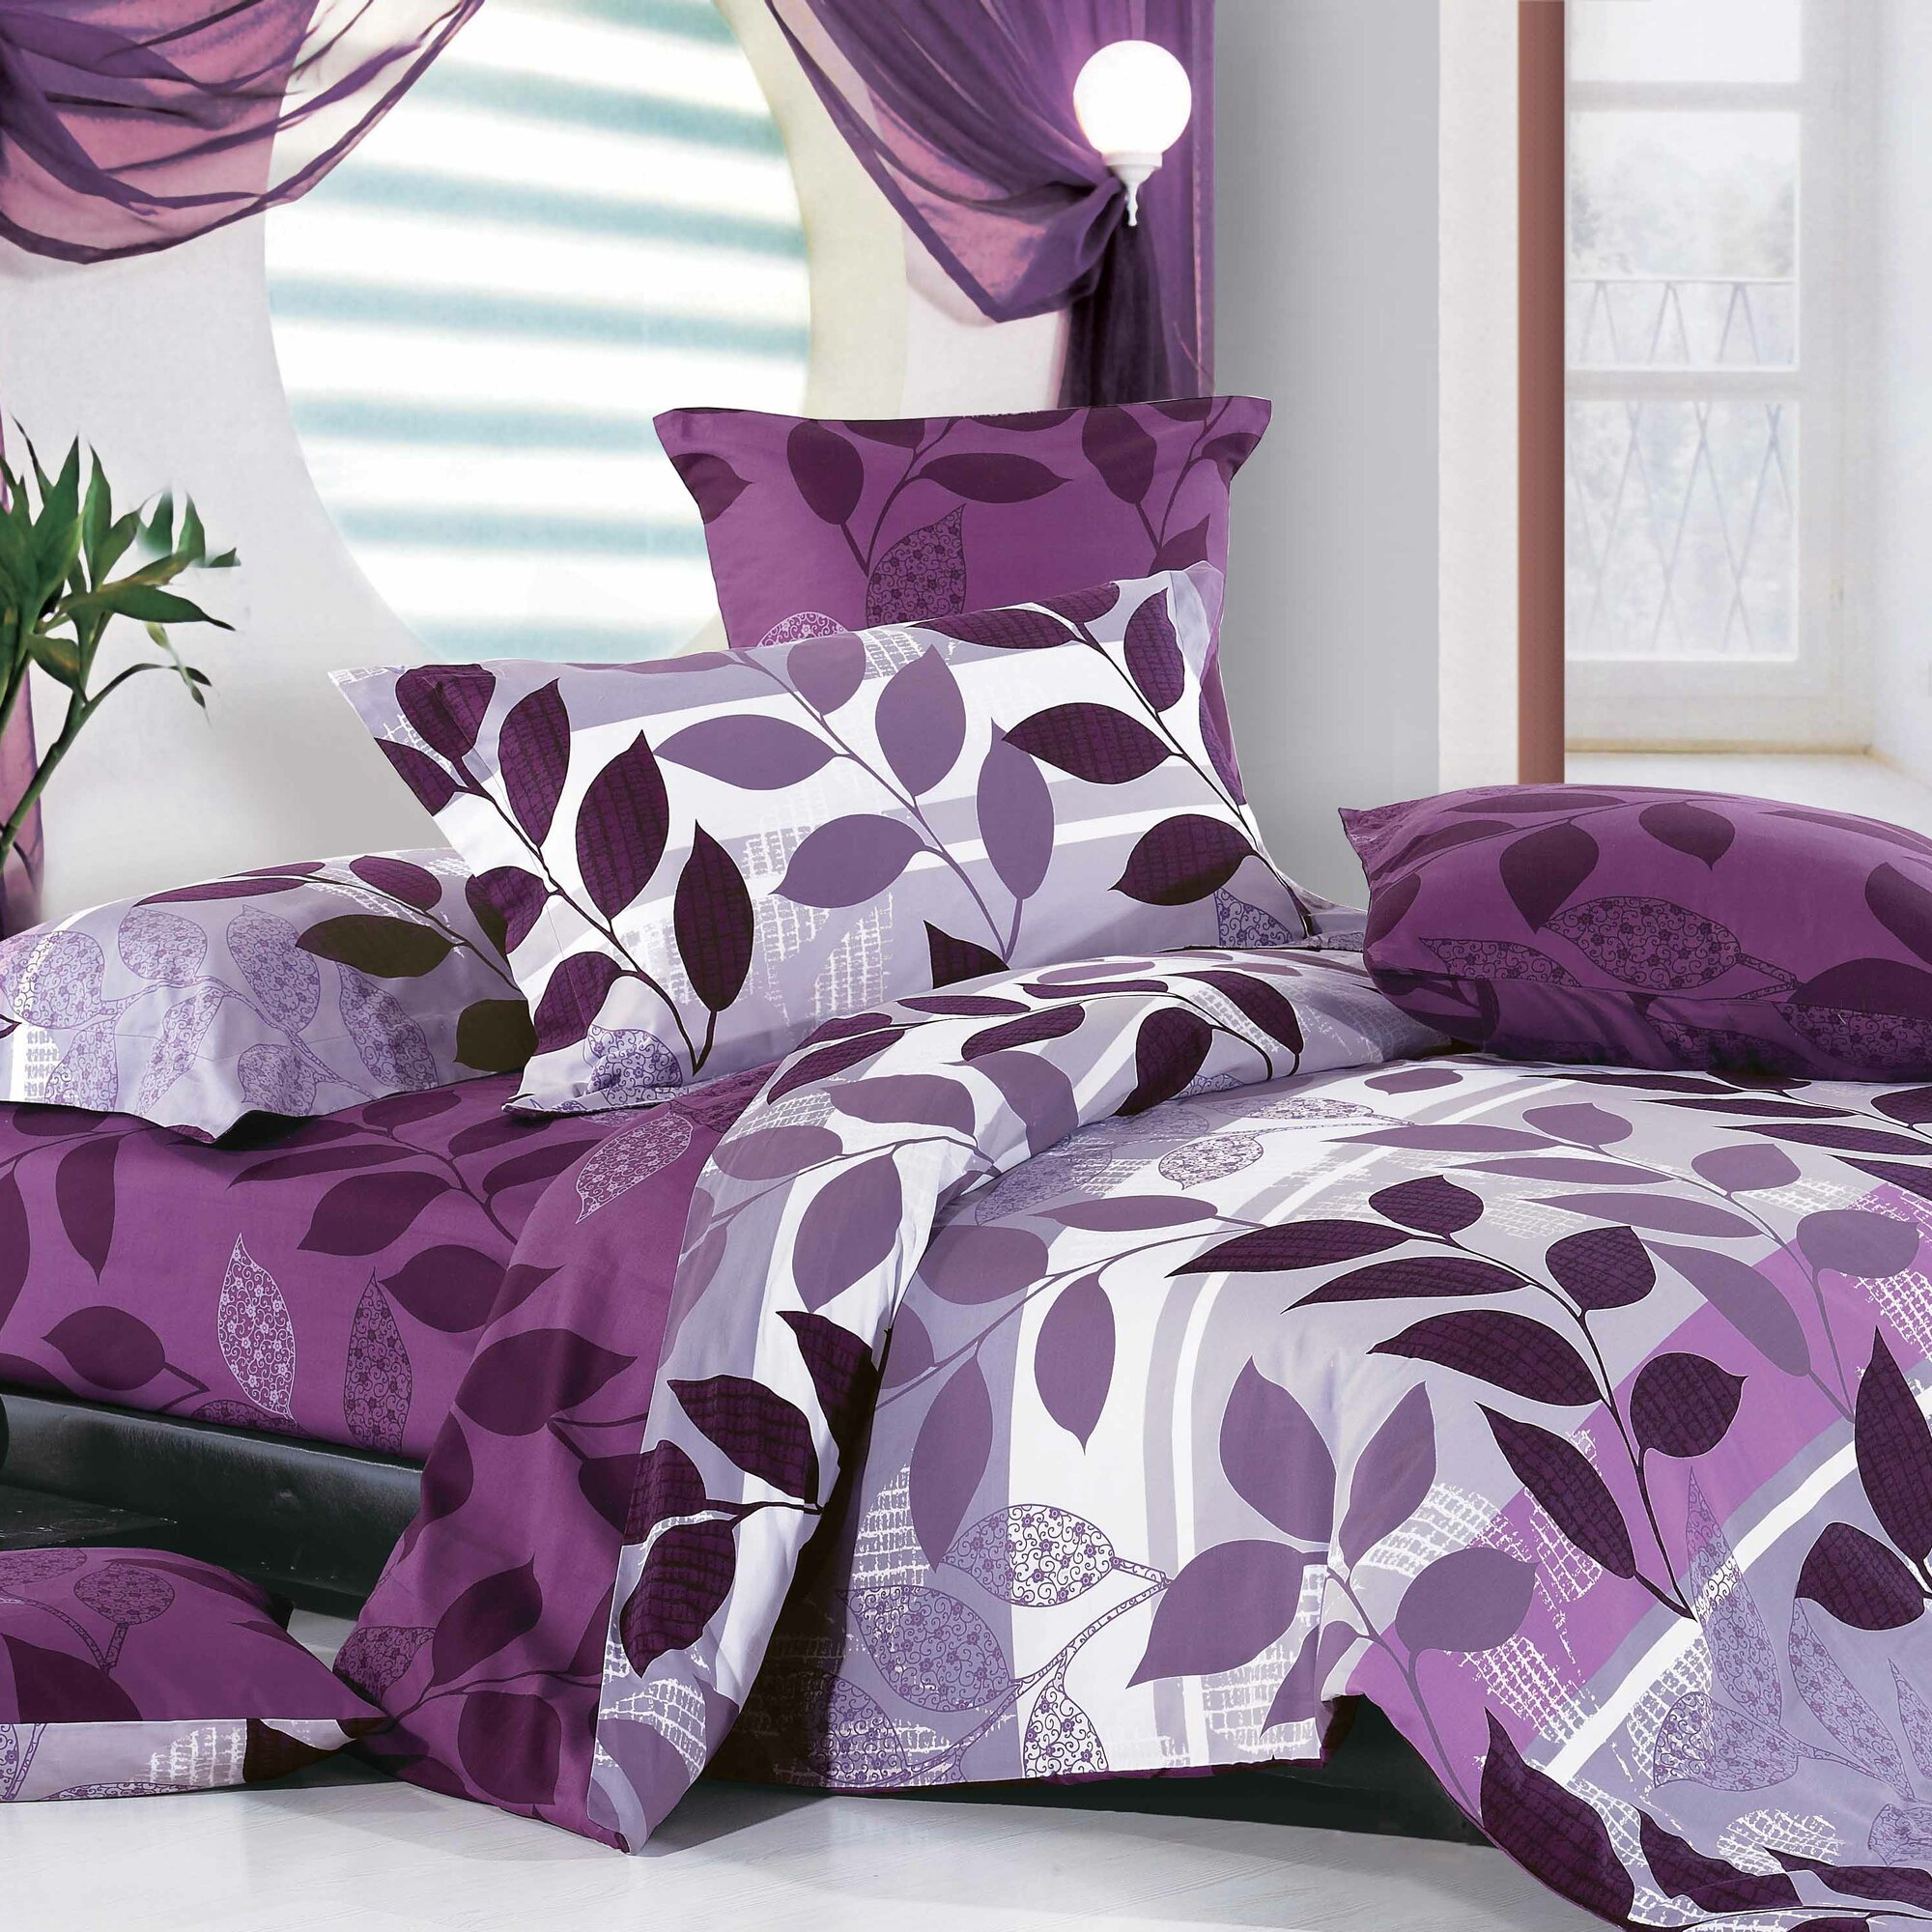 bedding midori fuchsia floral set lilac p comforter queen j from by york new